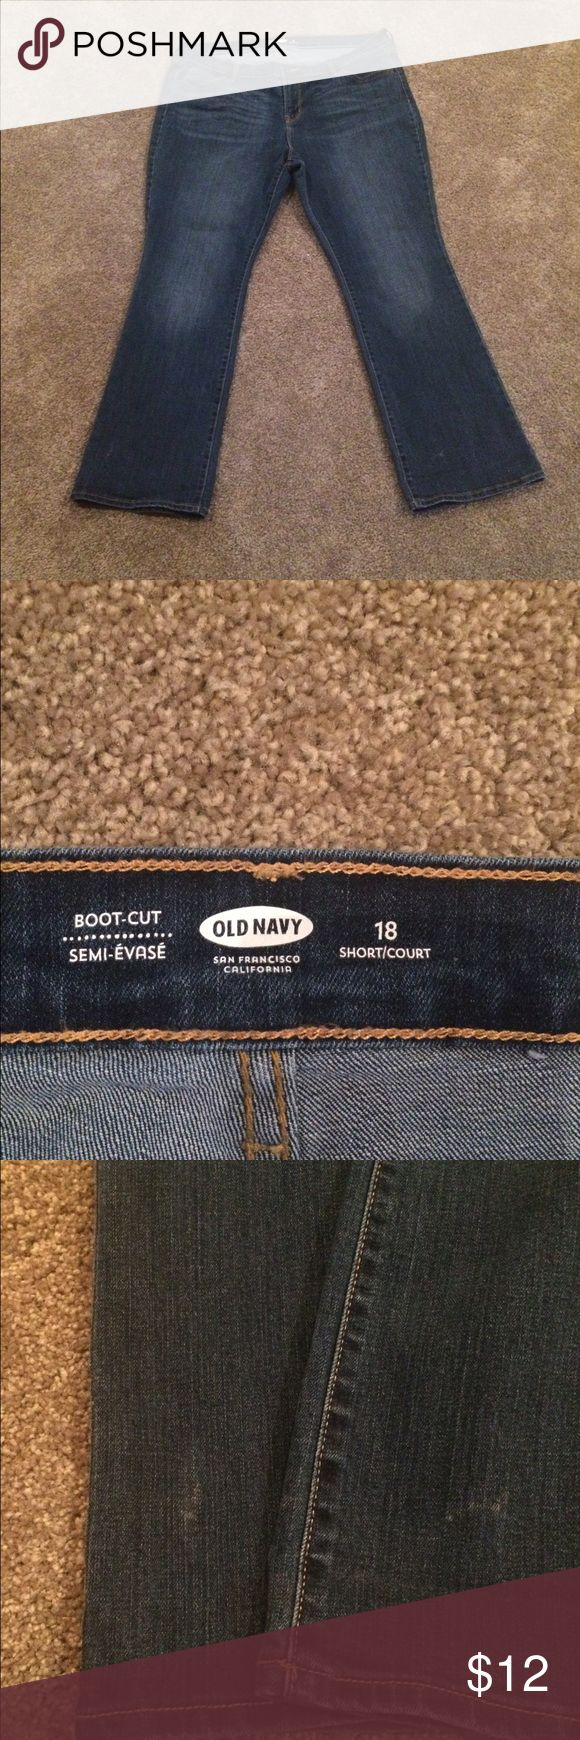 UC Old Navy women's jeans good condition jeans,  size 18 short, 2 blemishes on front legs, no other visible wear to jeans Old Navy Jeans Boot Cut